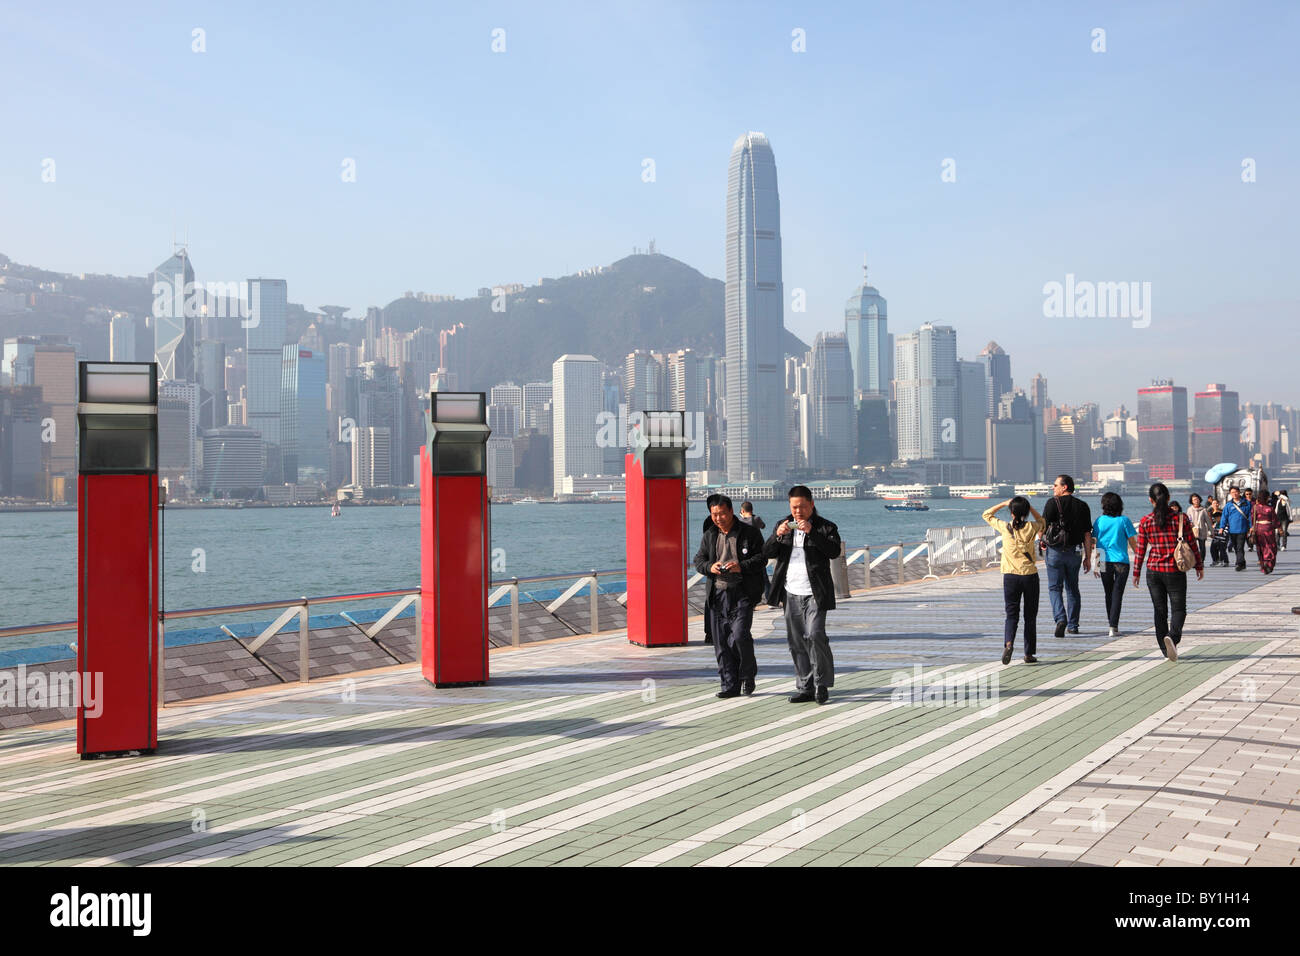 Avenue of Stars in Hong Kong. Photo taken at the 5th of December 2010 - Stock Image